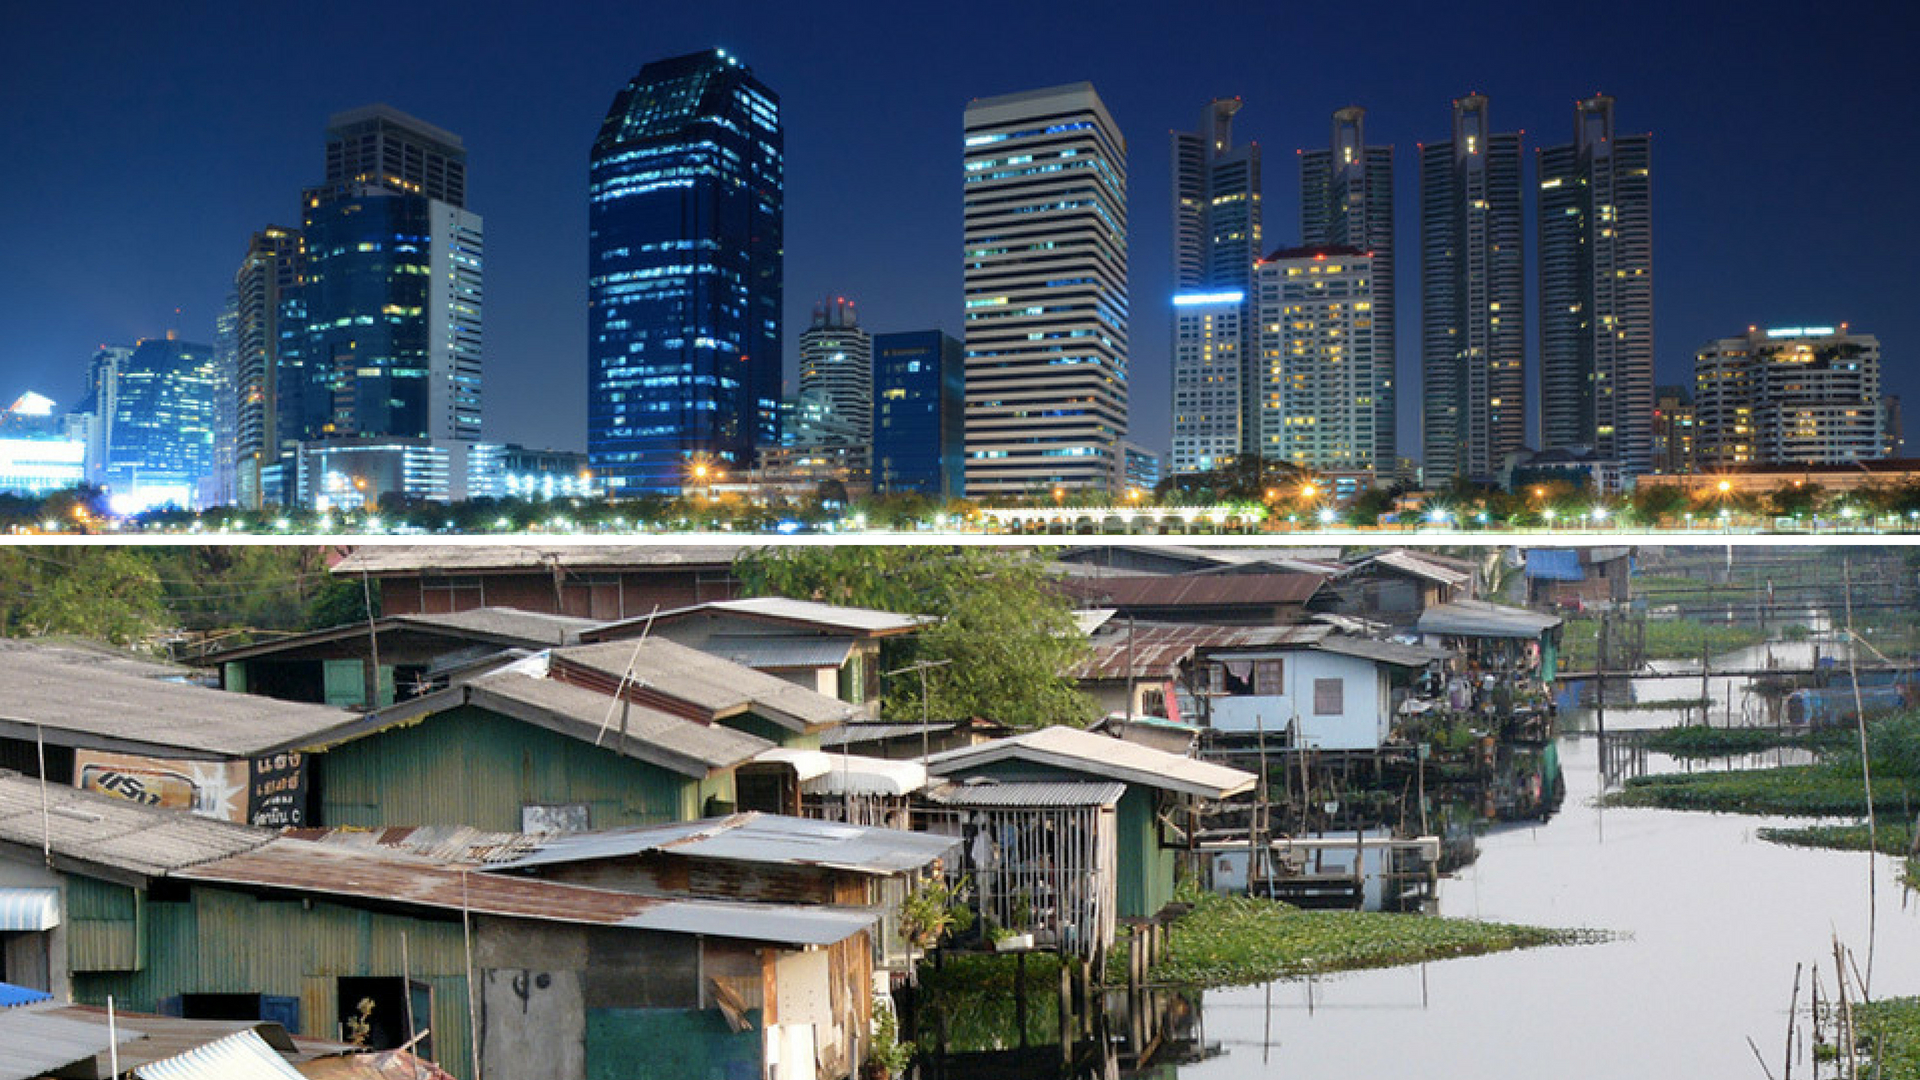 2 pic of Bangkok: the new/rich part of the city and the old/poor one